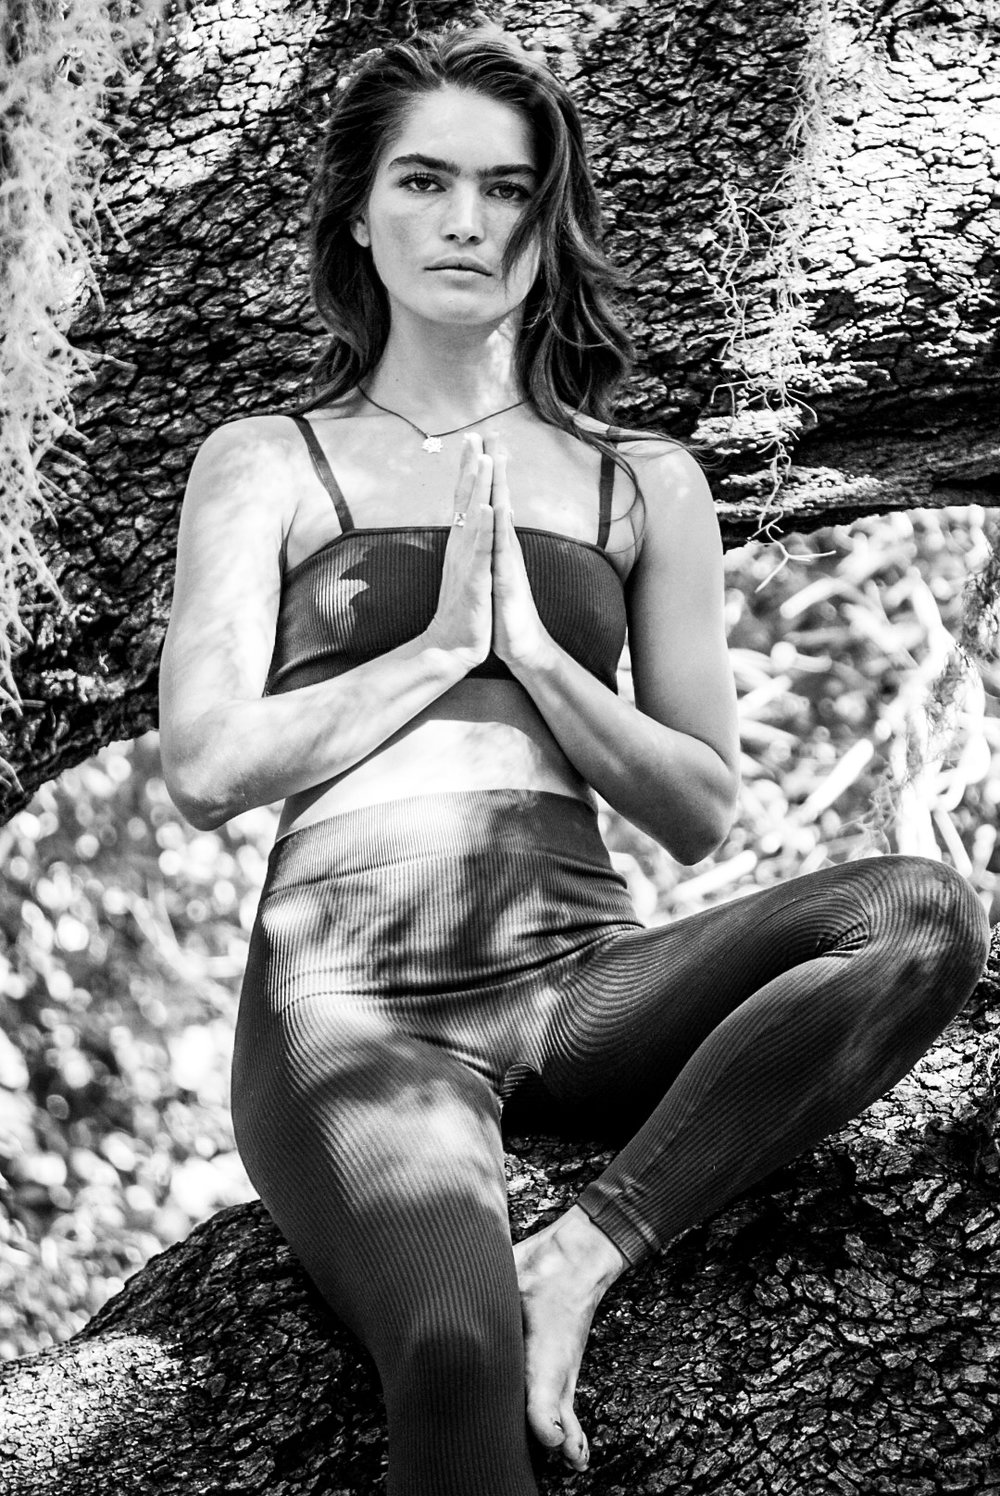 Hi! I'm Samantha. - Hometown: Sebring, FL.Instagram: @samantha_digiacomoWords I live by: Kindness / Where is the coffee?Teaching Style: Vinyasa, slow, mindful, strengthening & restorative.Favorite Pose: Reversed Warrior — I feel grounded to my mat the most during this pose & like that I get an amazing opening/stretch of the side body. It's the complete package of strengthening & stretching yumminess.Training: OM Movement 200HR YTT.Outside the Grove: My modeling career, pilates, a lot of miles on my feet running & even more miles on the bike cycling. I'm obsessed with a good spa session (steam/sauna). In between all of this — its all about my people & having a good time.Favorite Yoga tunes: A complete variety from Sade to Childish Gambino to calming sounds, whatever the mood of the day is bringing.Flow with Samantha ➝